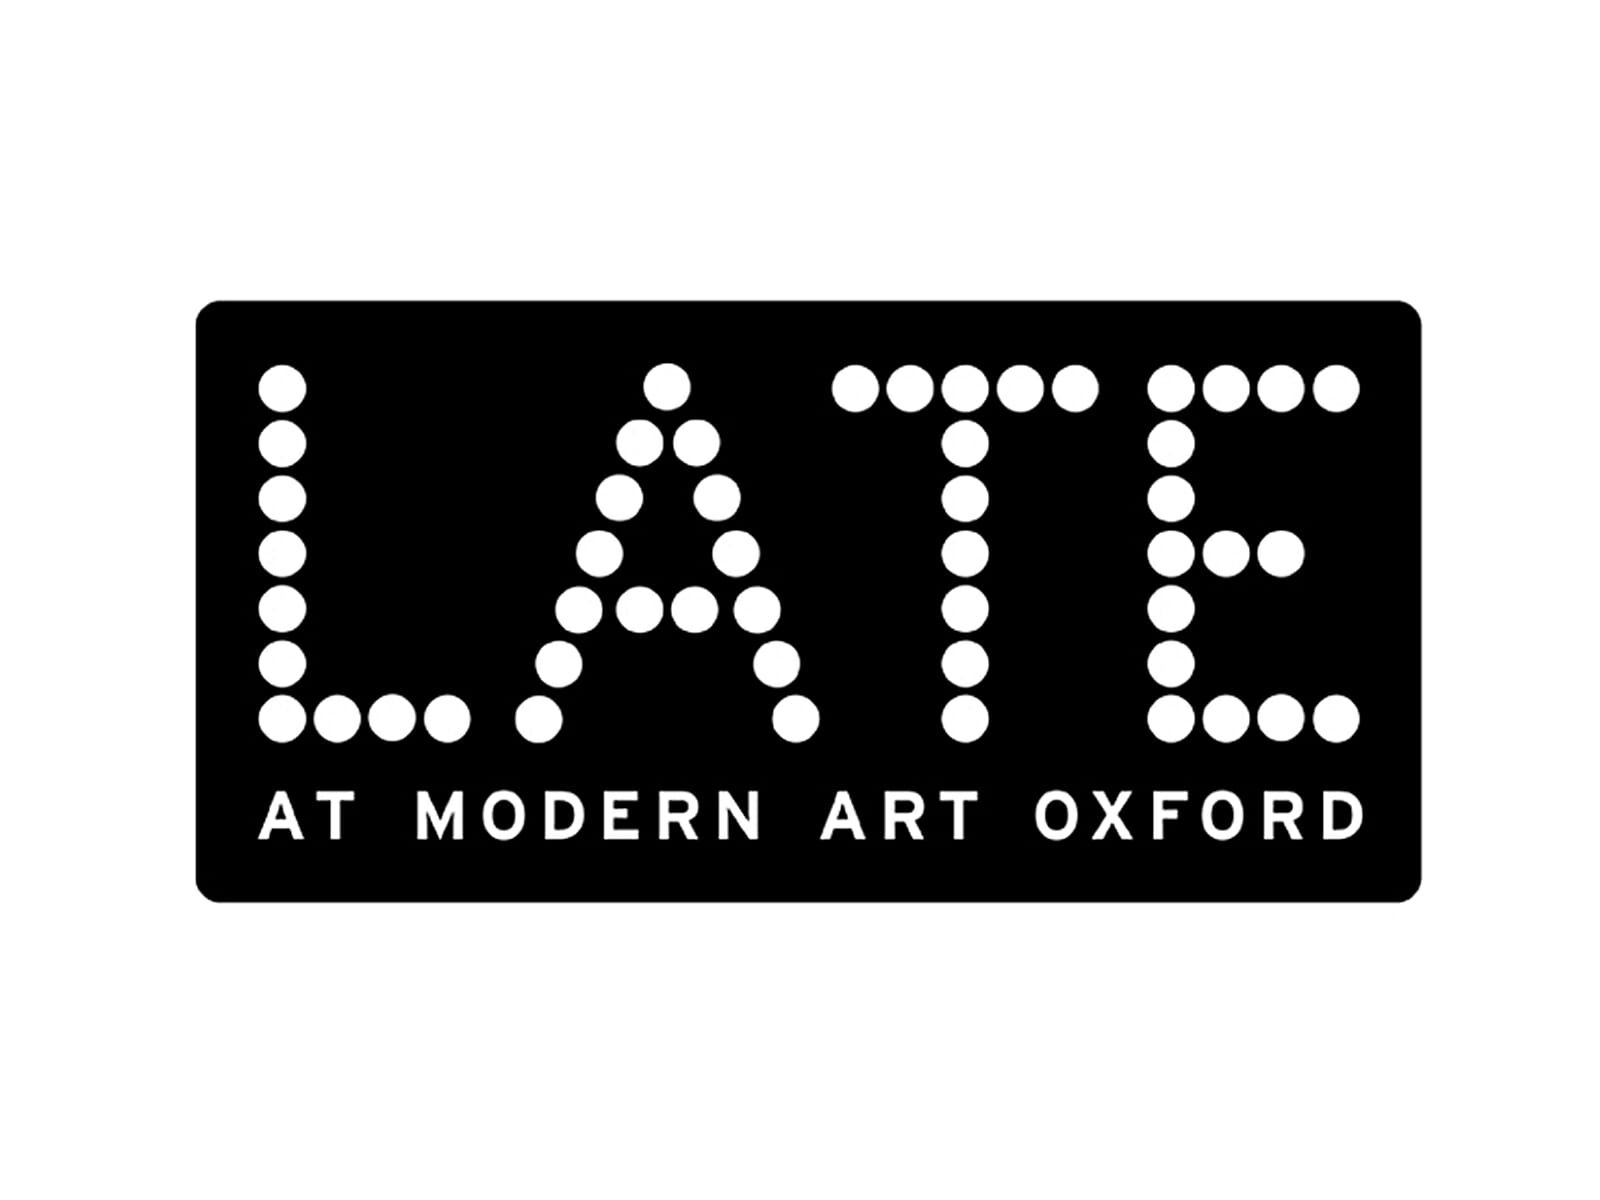 Late at Modern Art Oxford